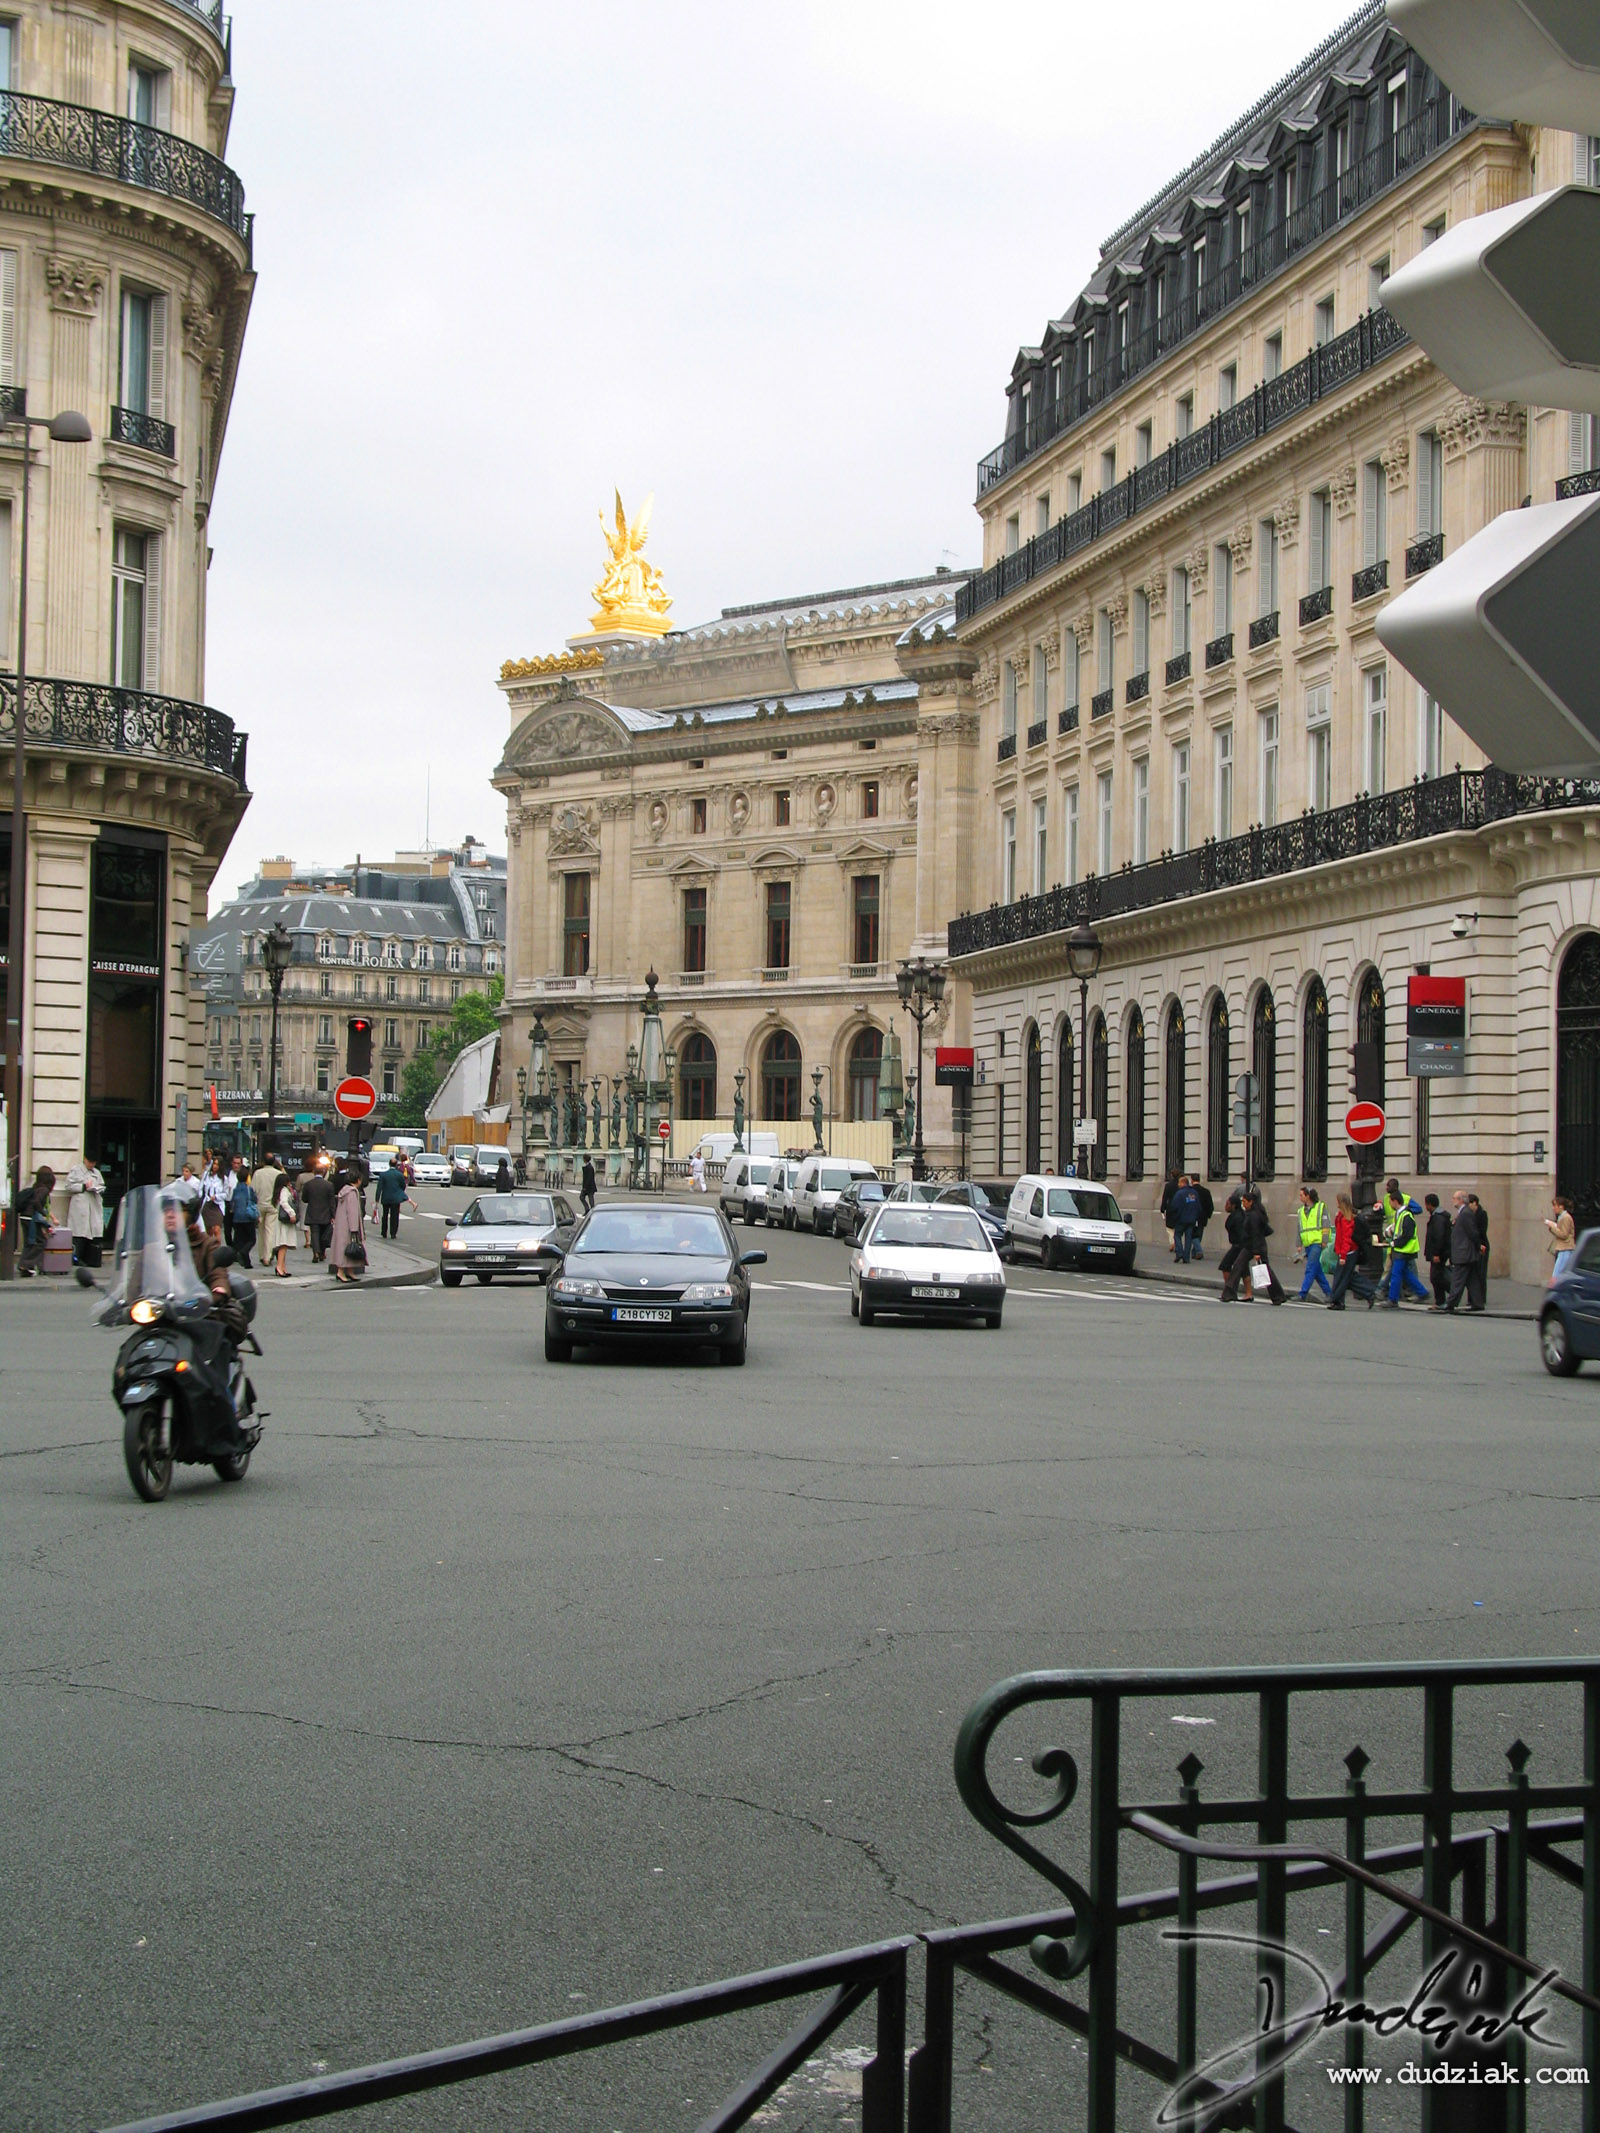 Picture of the Paris Operahouse from a distance